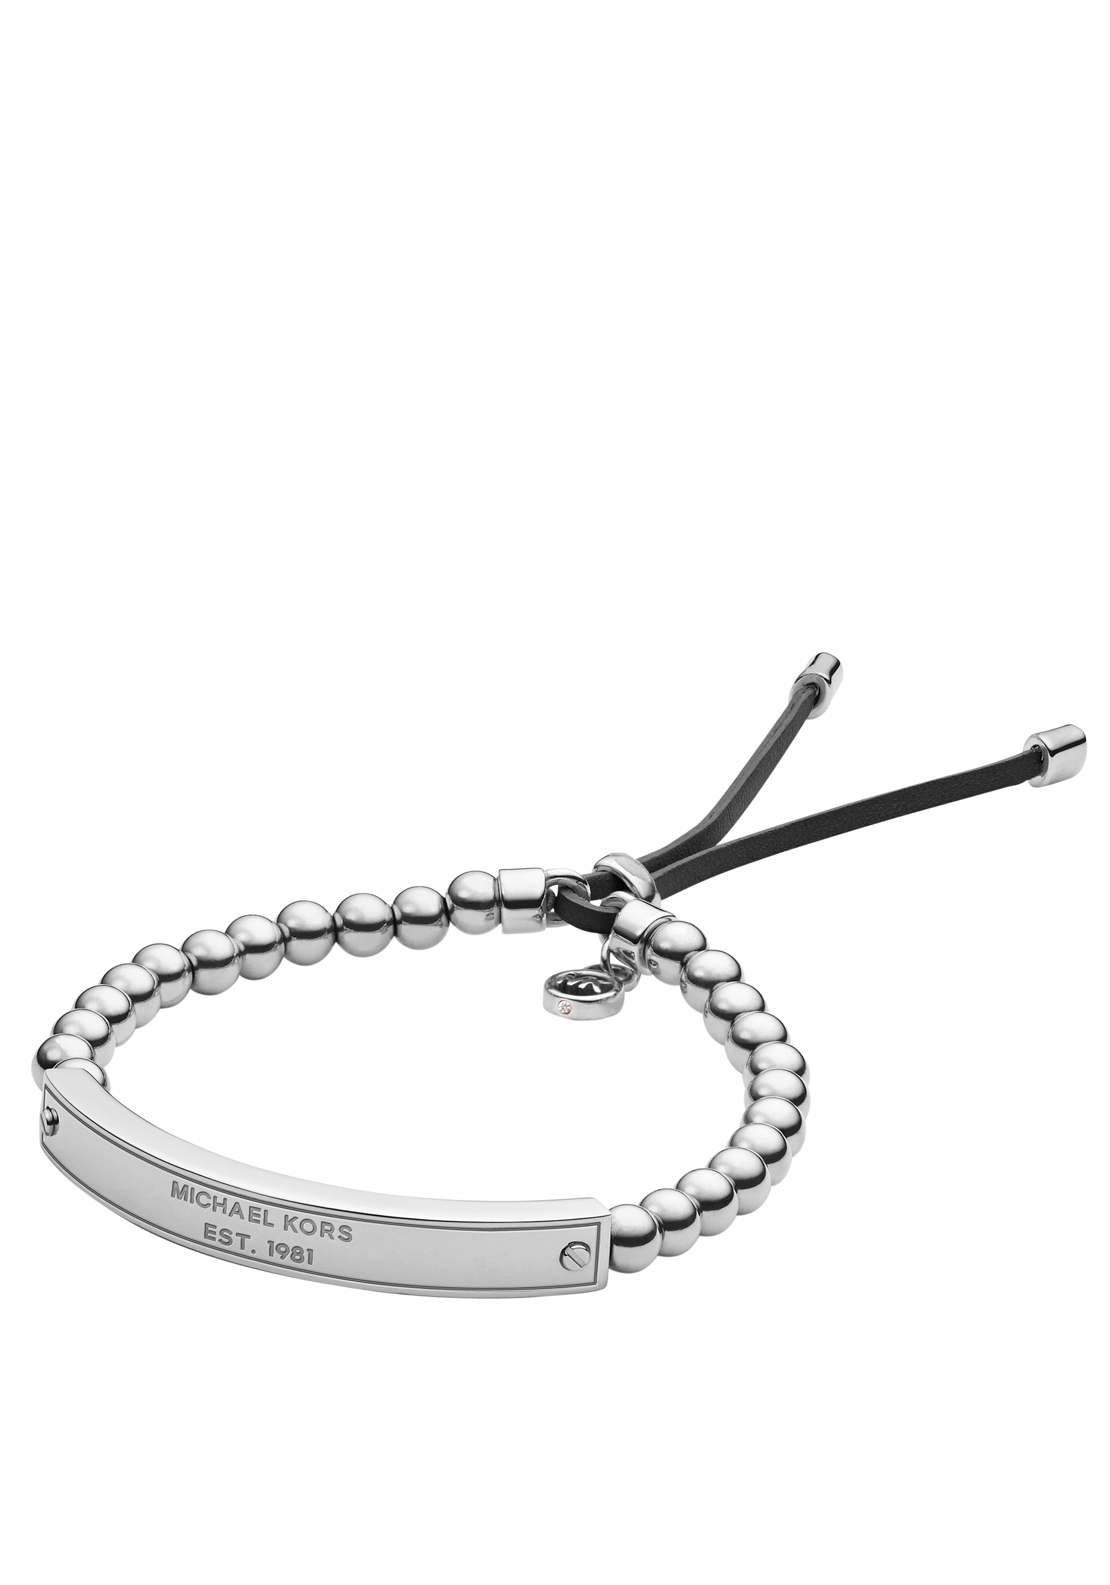 Michael Kors Womens Plaque Stretch Bracelet, Silver